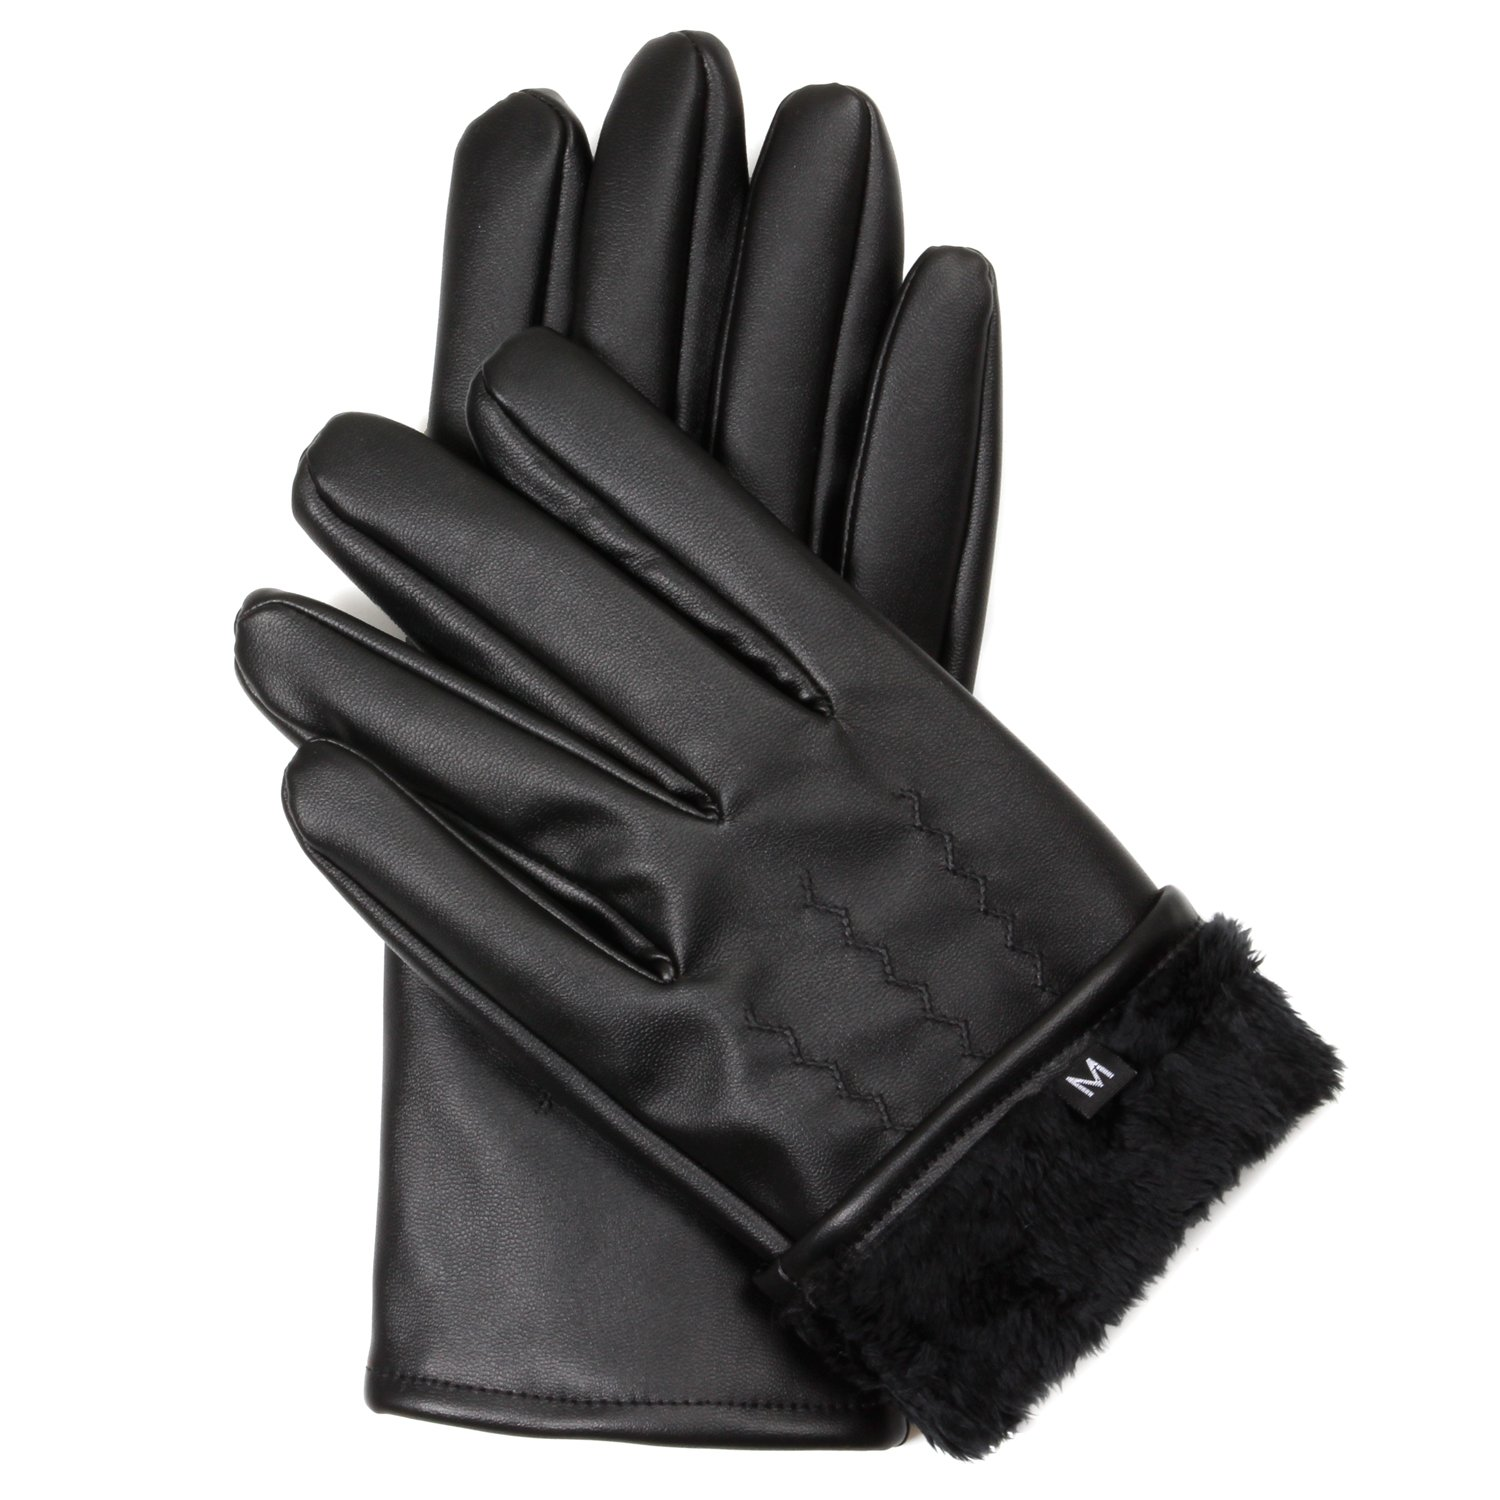 Men's Fur Lined Faux Leather Gloves with Touchscreen Technology